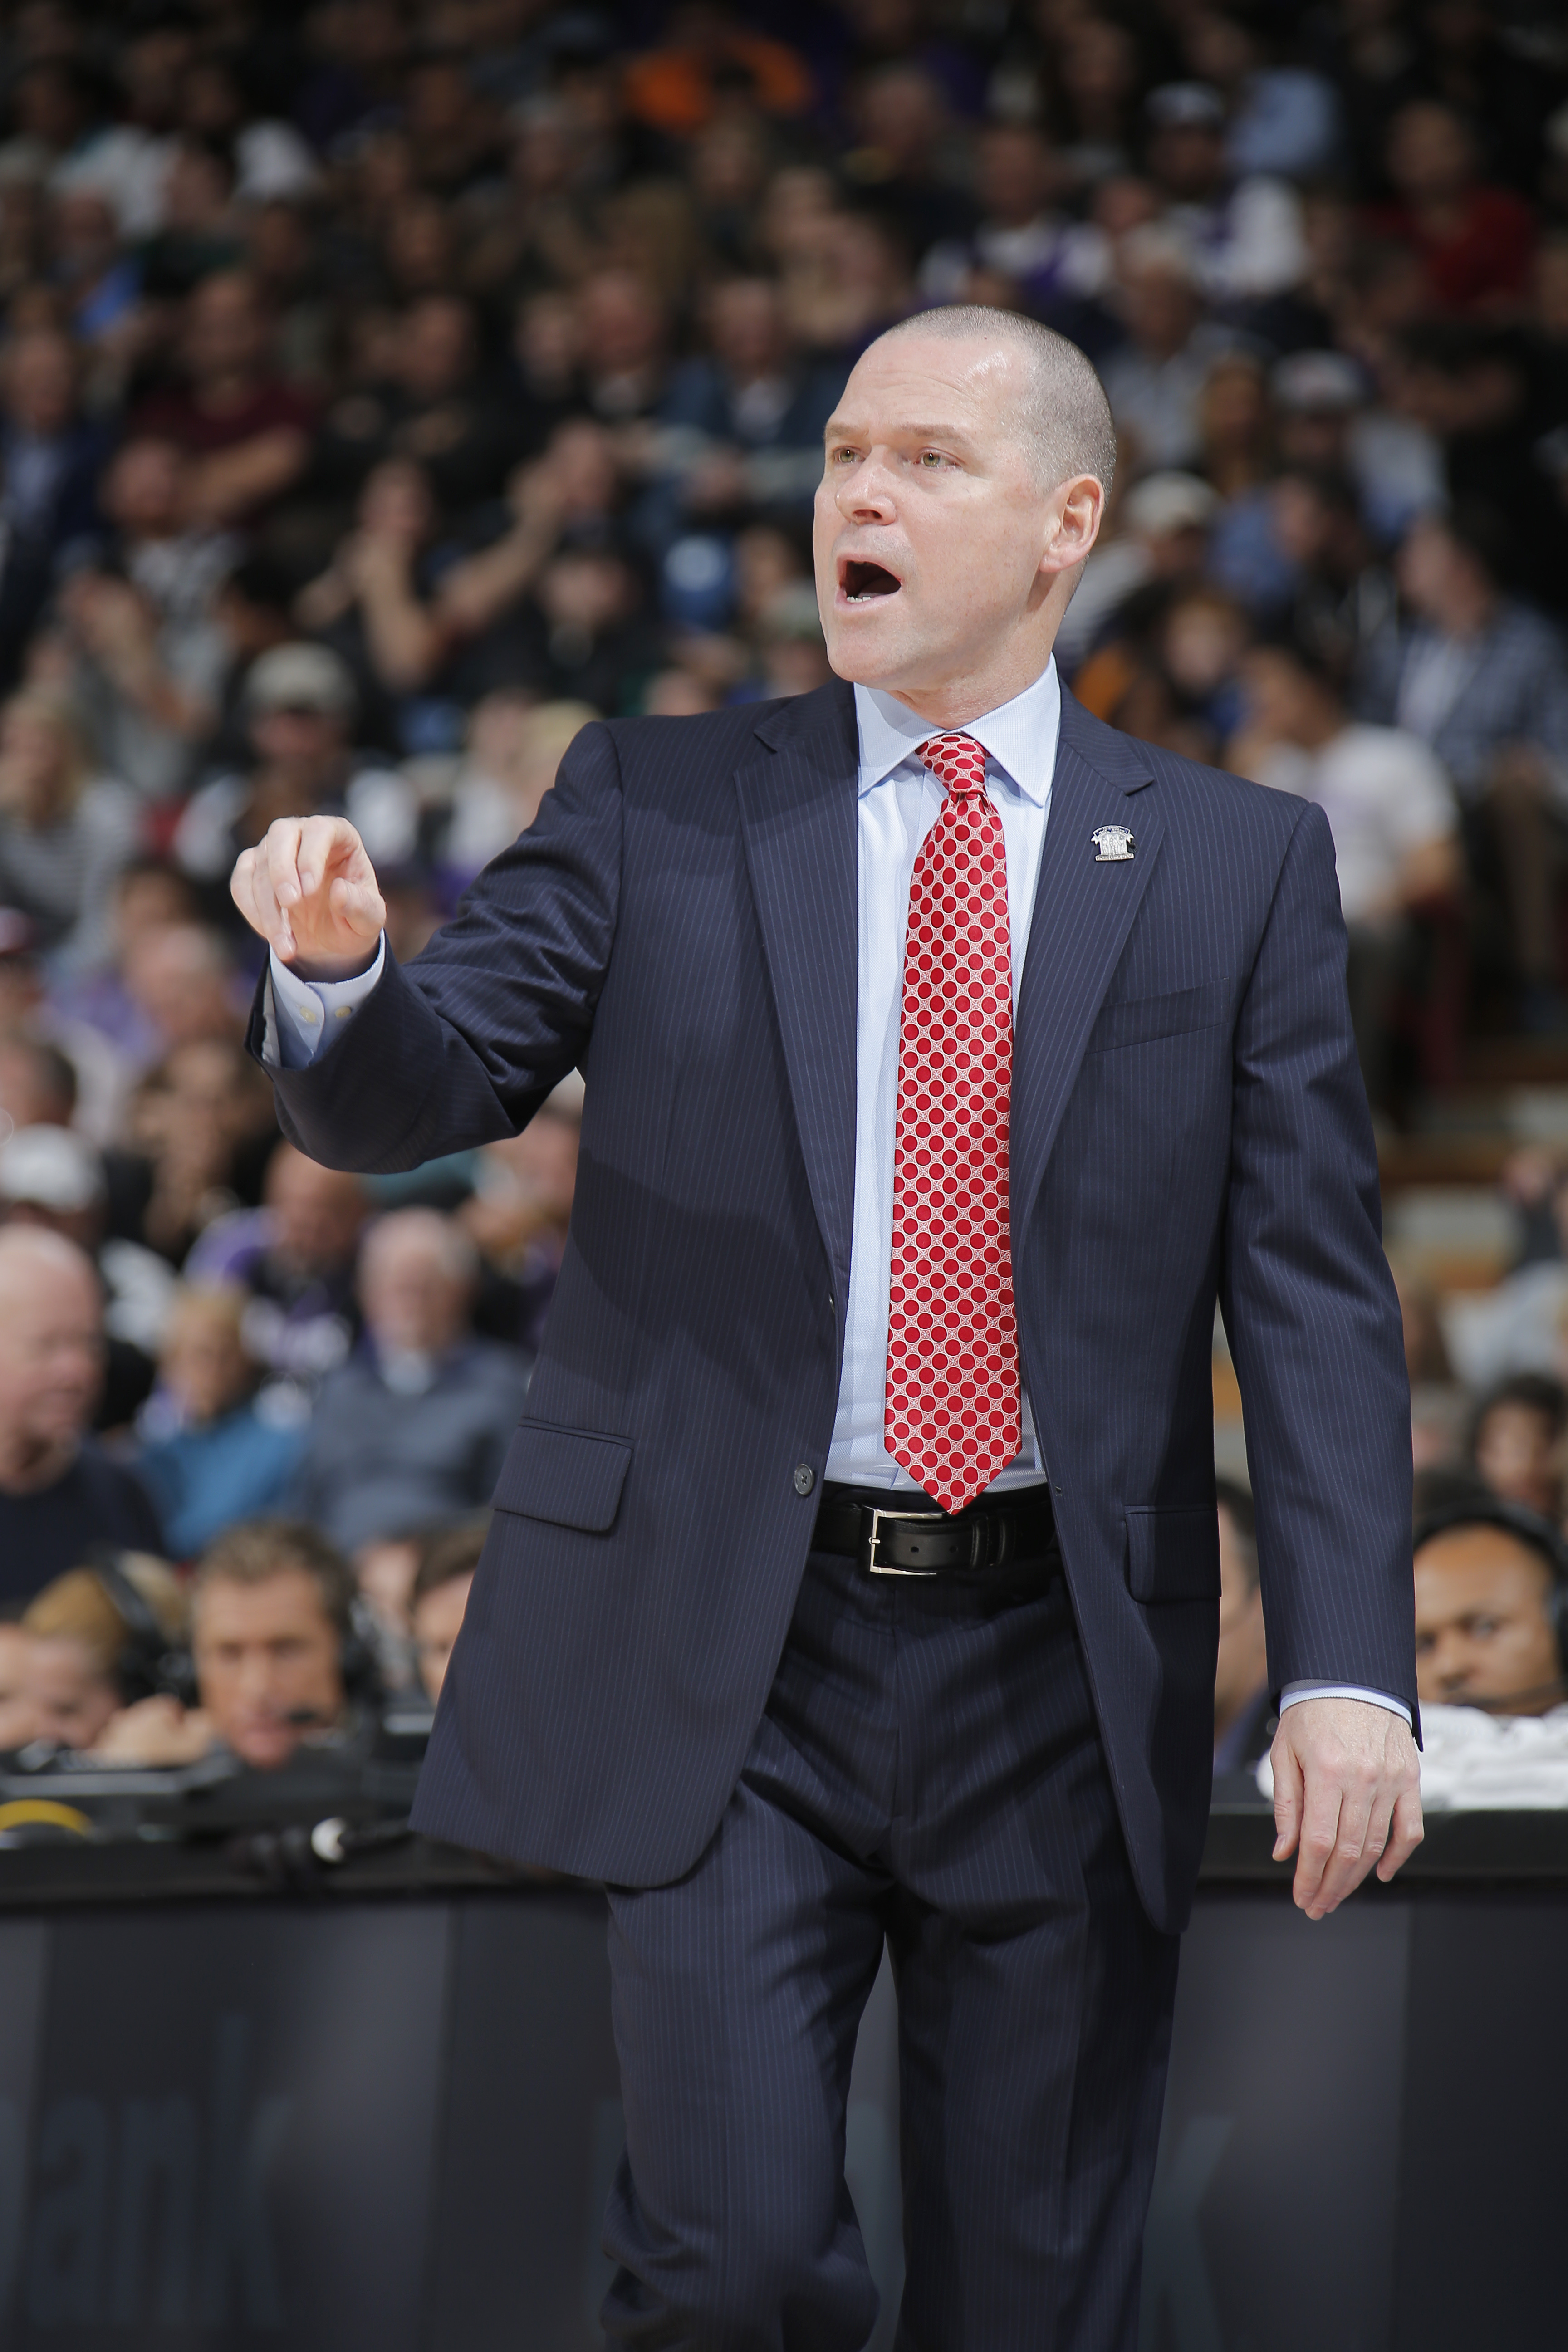 SACRAMENTO, CA - DECEMBER 2: Michael Malone Head Coach of the Sacramento Kings stands on the court during a game against the Toronto Raptors on December 2, 2014 at Sleep Train Arena in Sacramento, California. (Photo by Rocky Widner/NBAE via Getty Images)